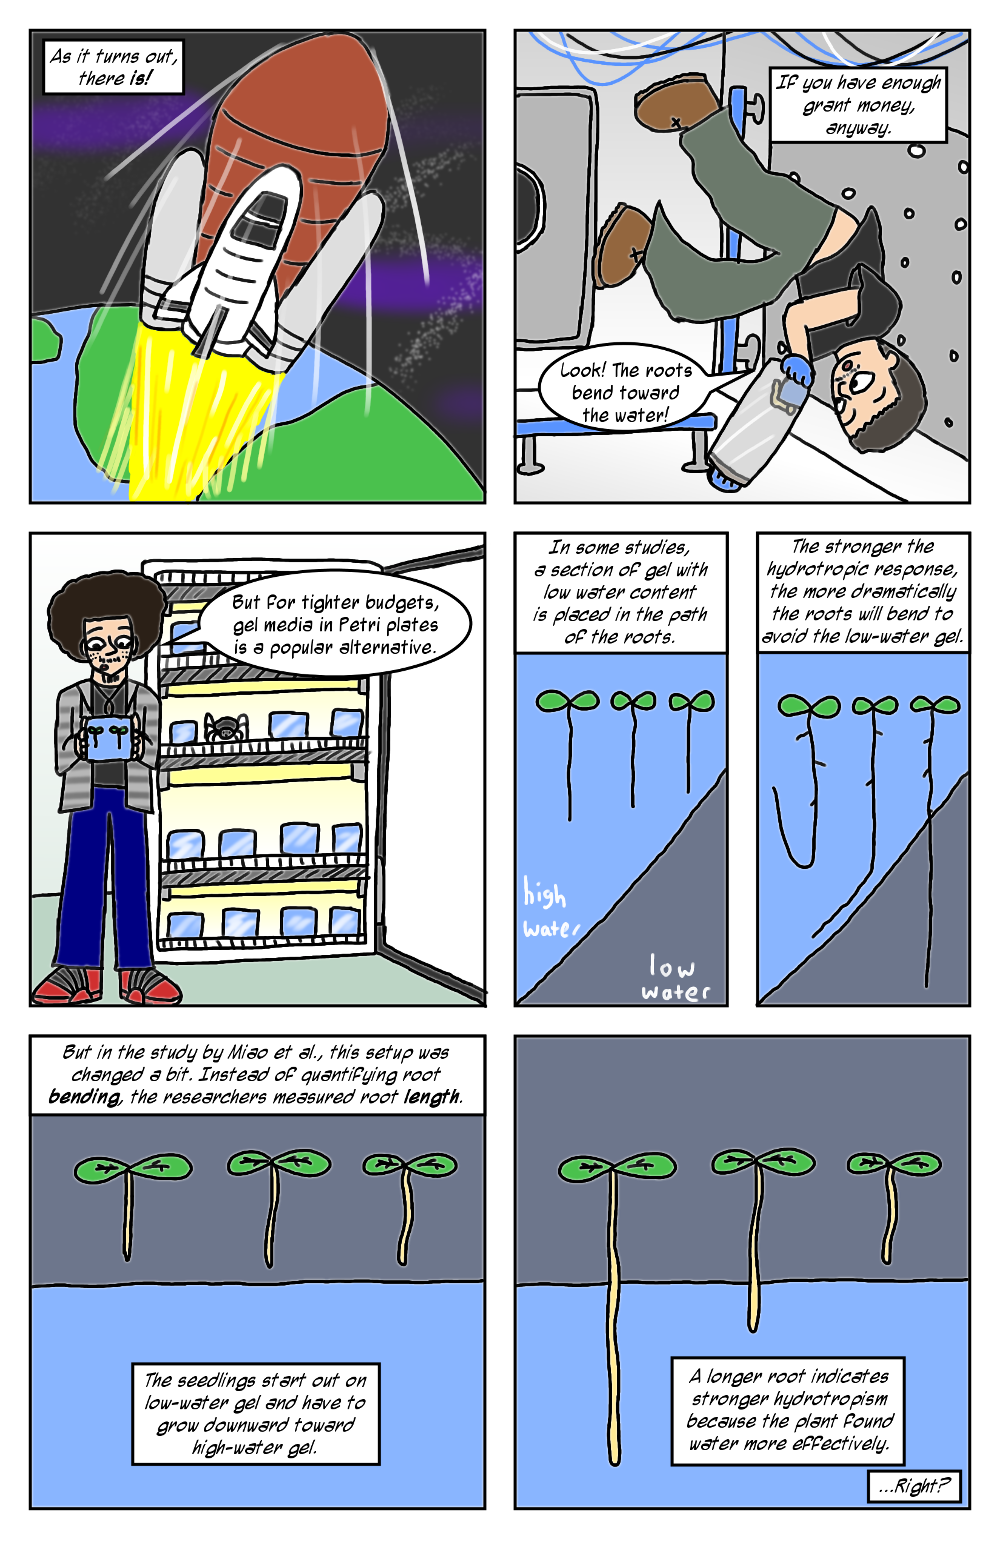 hydrotropism methods (2)